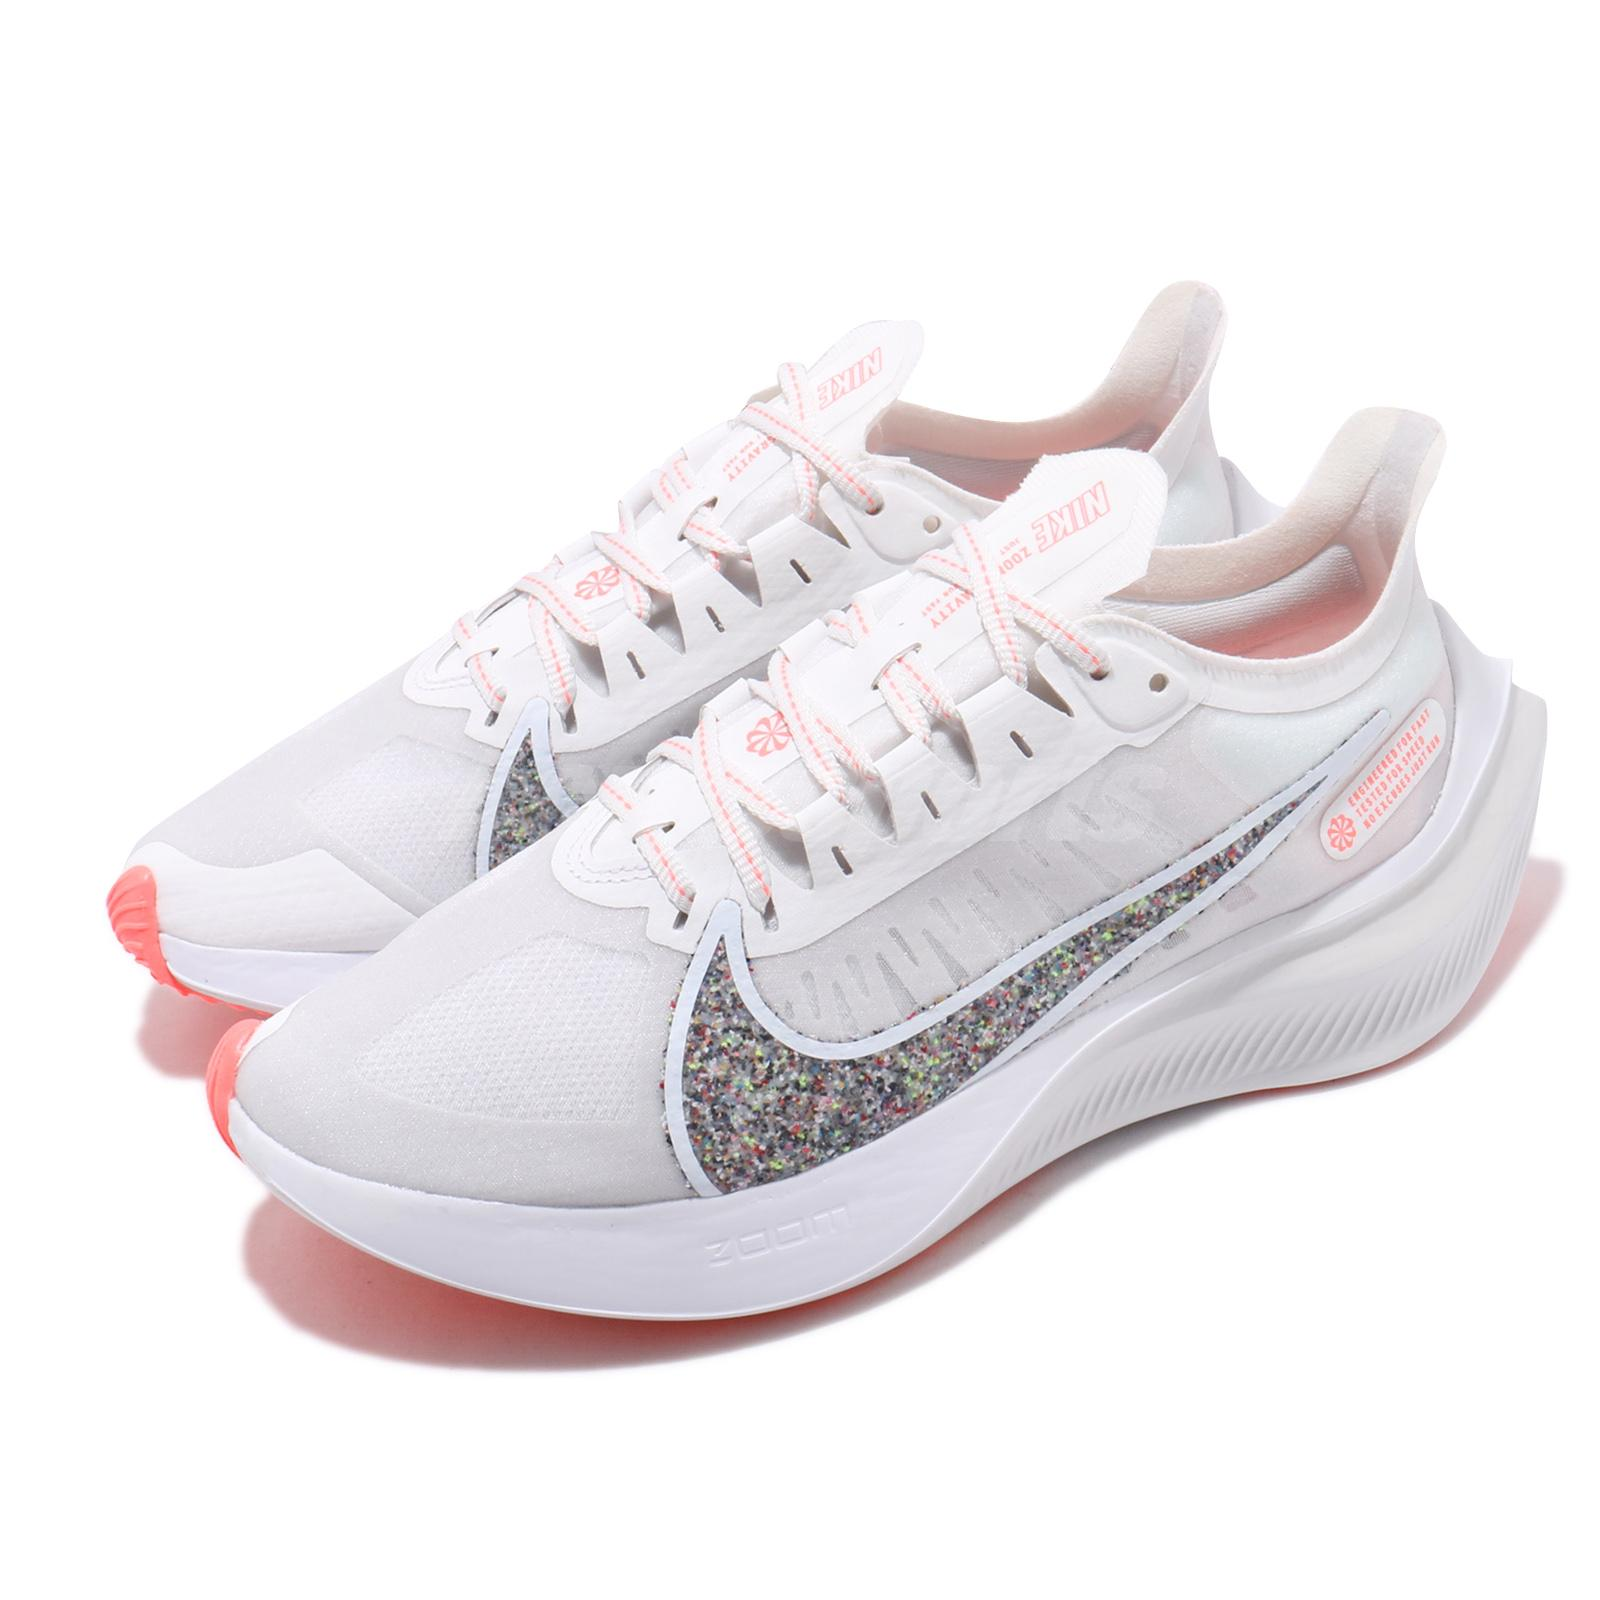 Details about Nike Wmns Zoom Gravity White Grey Coral Women Running Shoes  Sneakers BQ3203-101